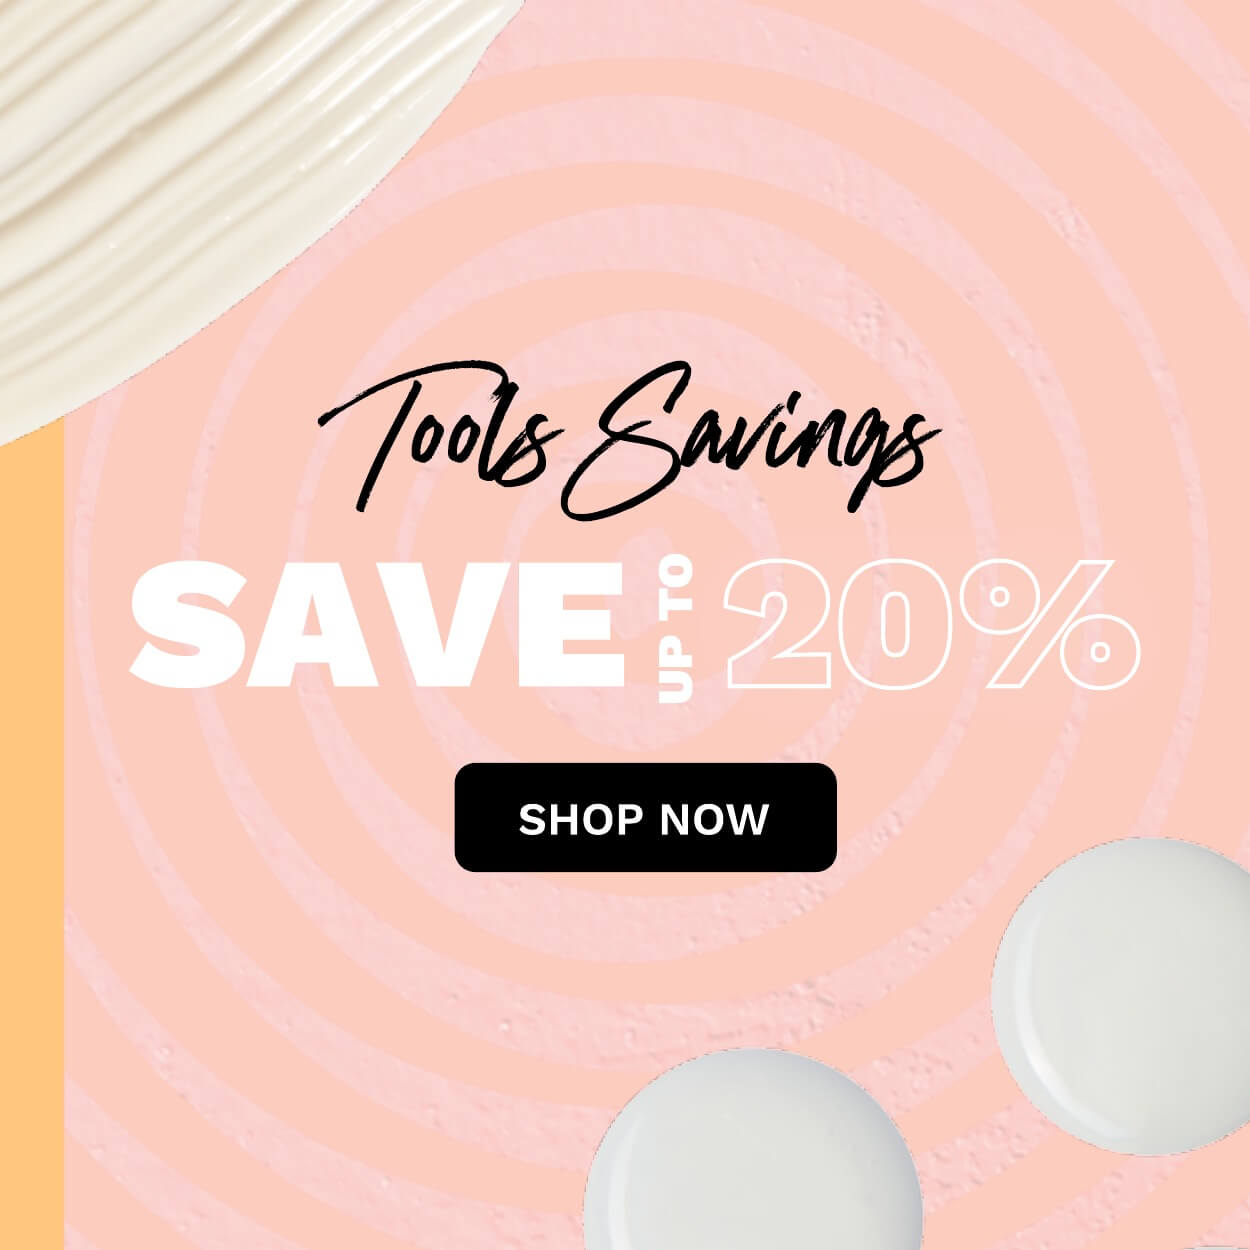 Save up to 25% off tools!